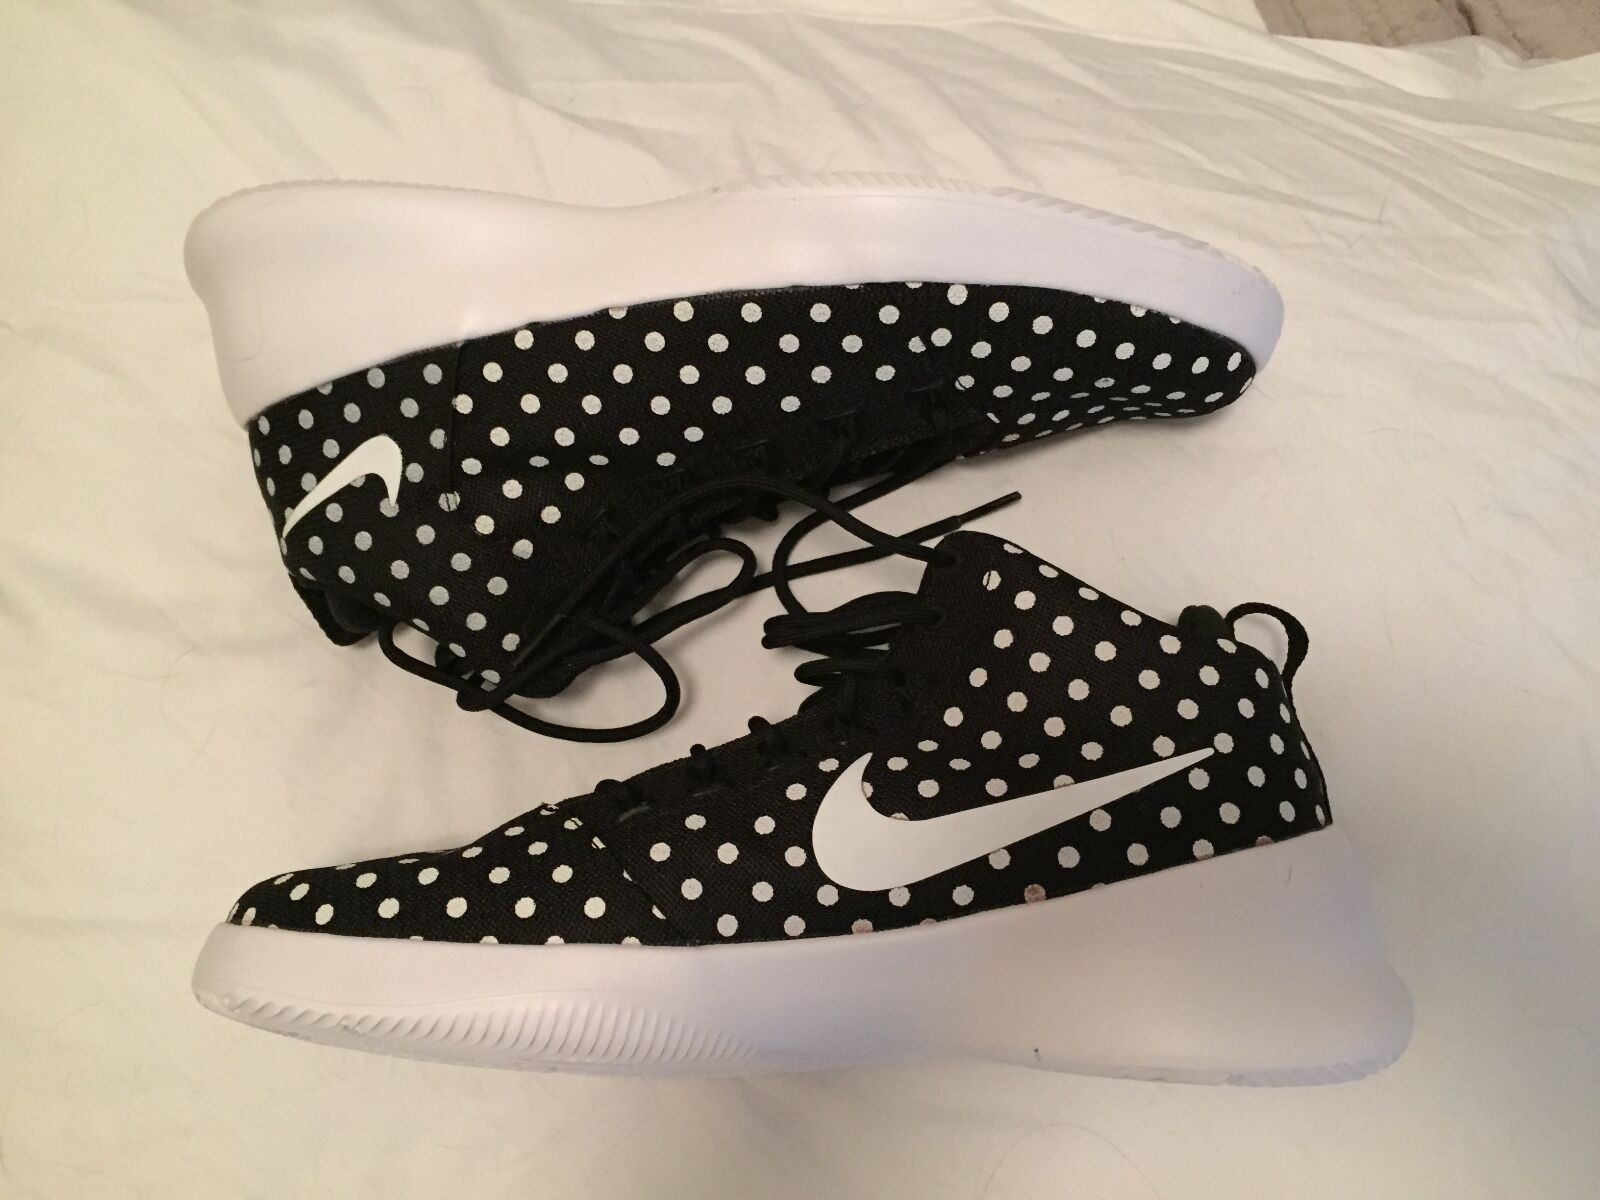 Zapatillas nike us Zapatillas hyperfr 3sh PRM 805898002 us nike 11,5 dots negro 9eb003